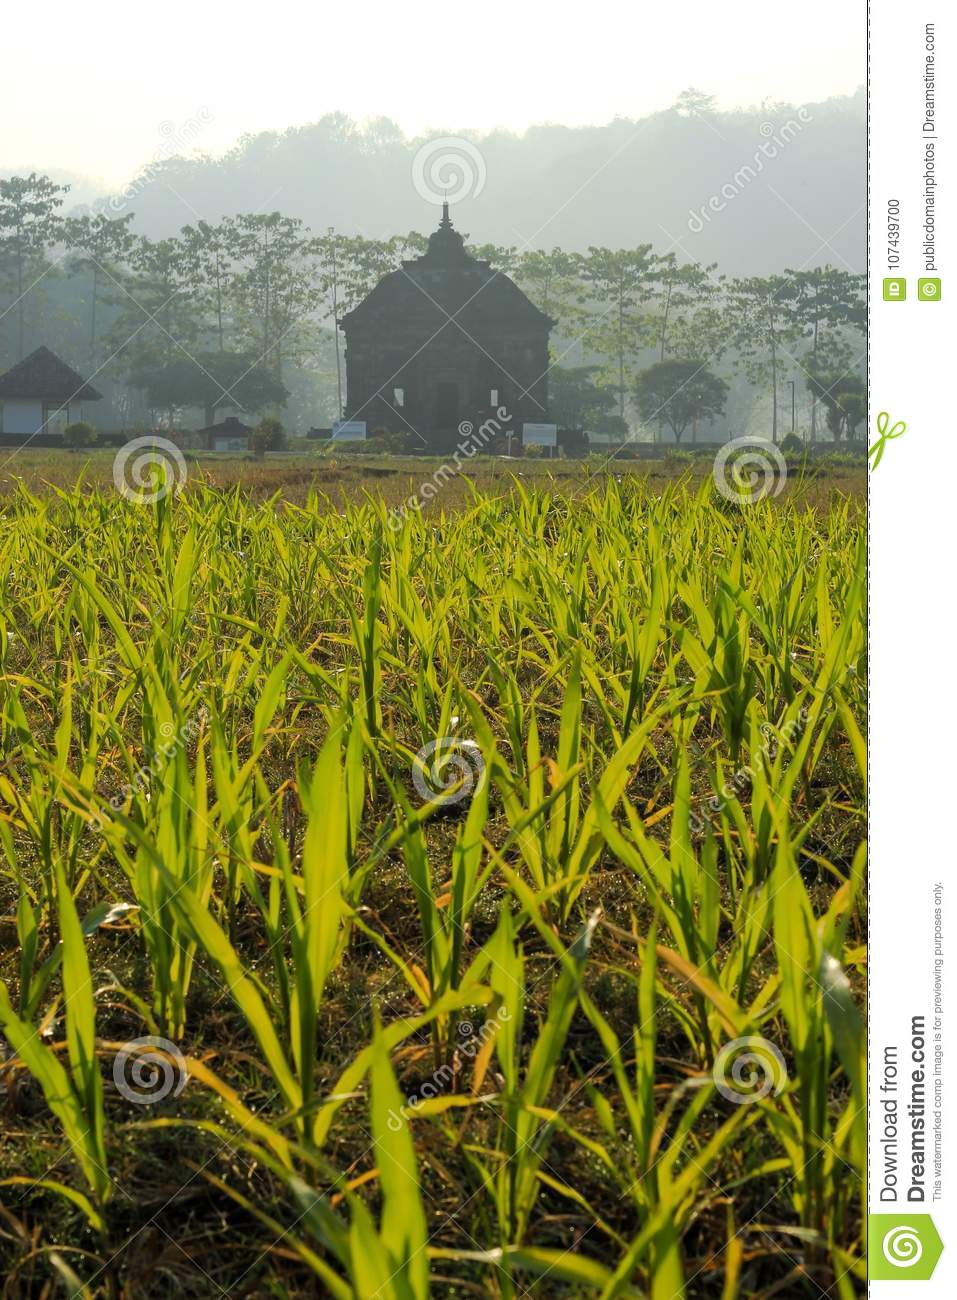 Crop, Agriculture, Field, Vegetation Picture. Image: 107439700